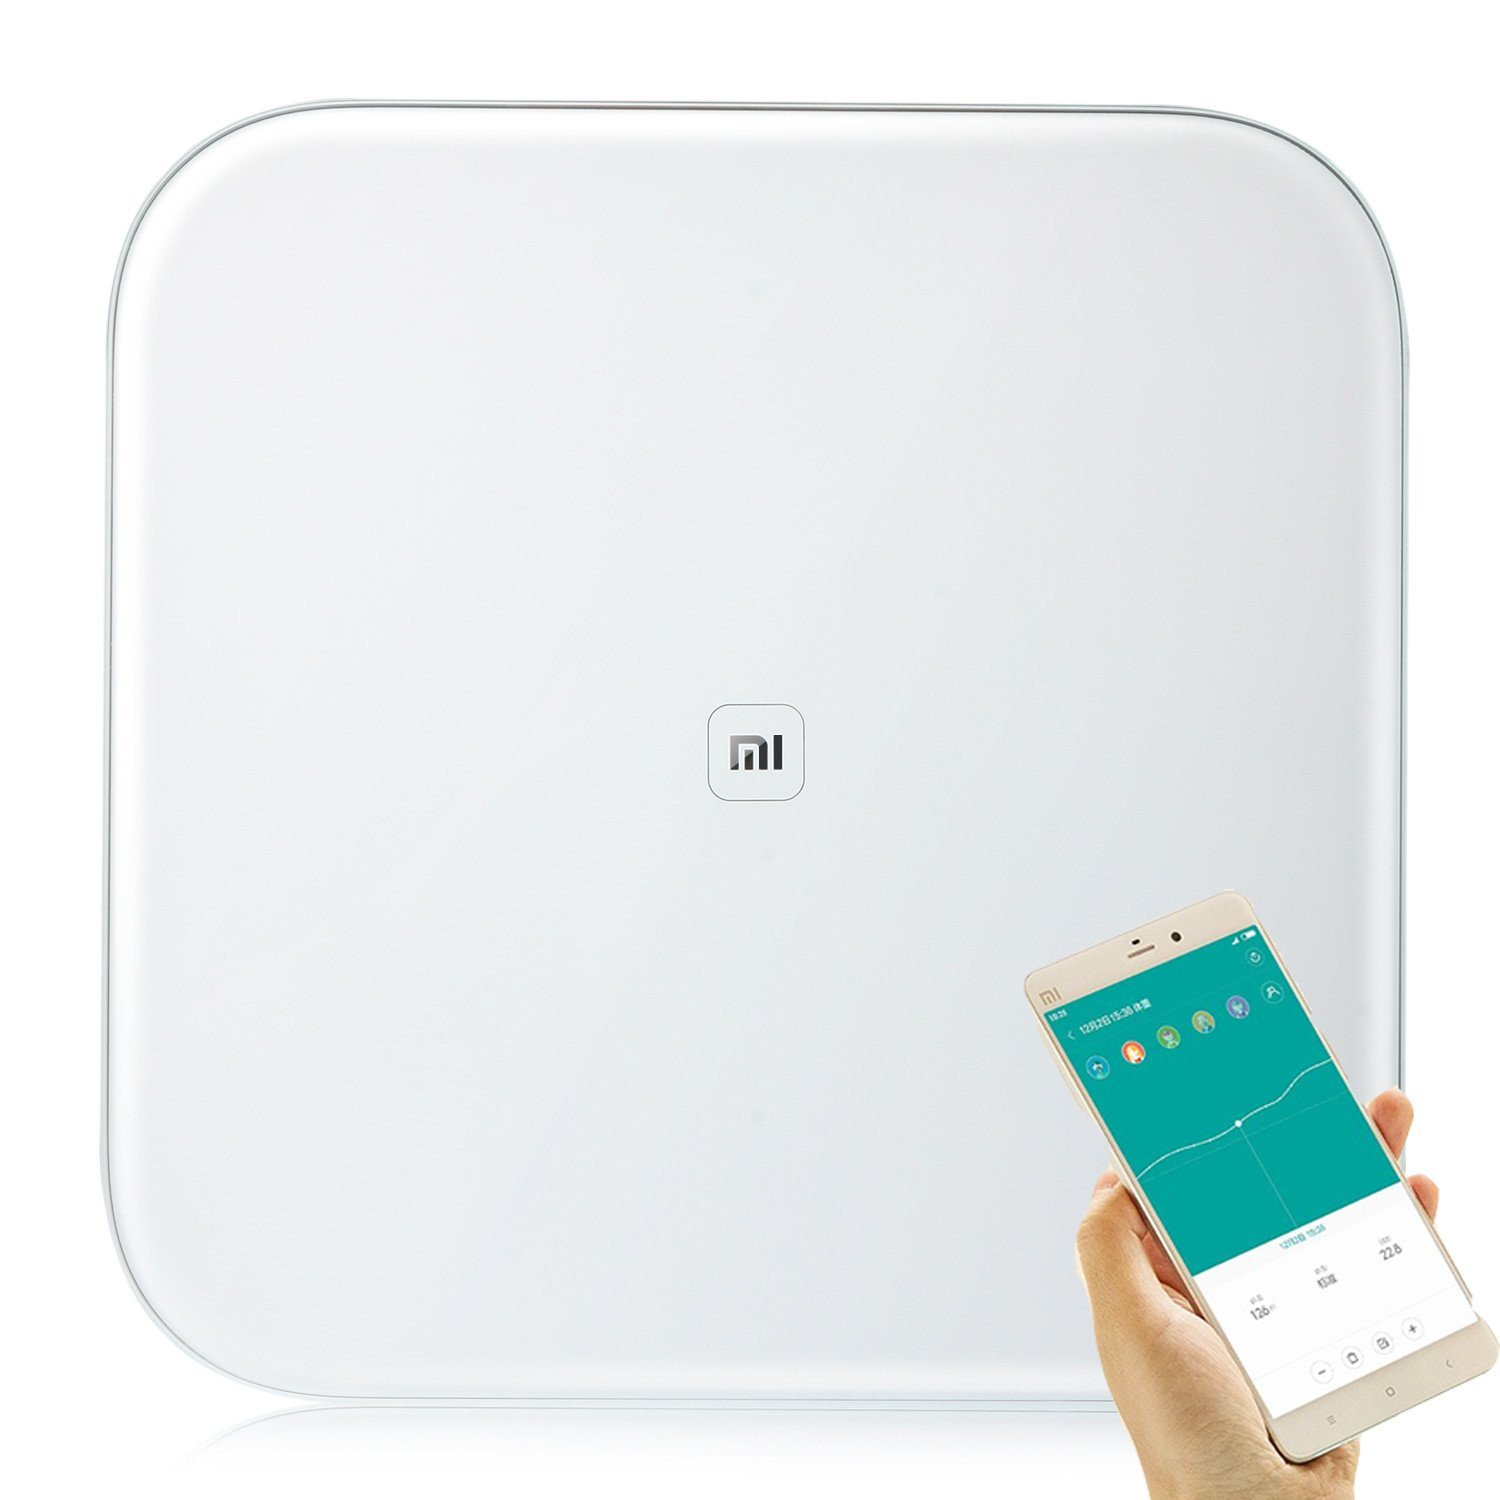 xiaomi-mi-body-fat-smart-scale-tells-much-more-than-just-your-weight-007.jpg